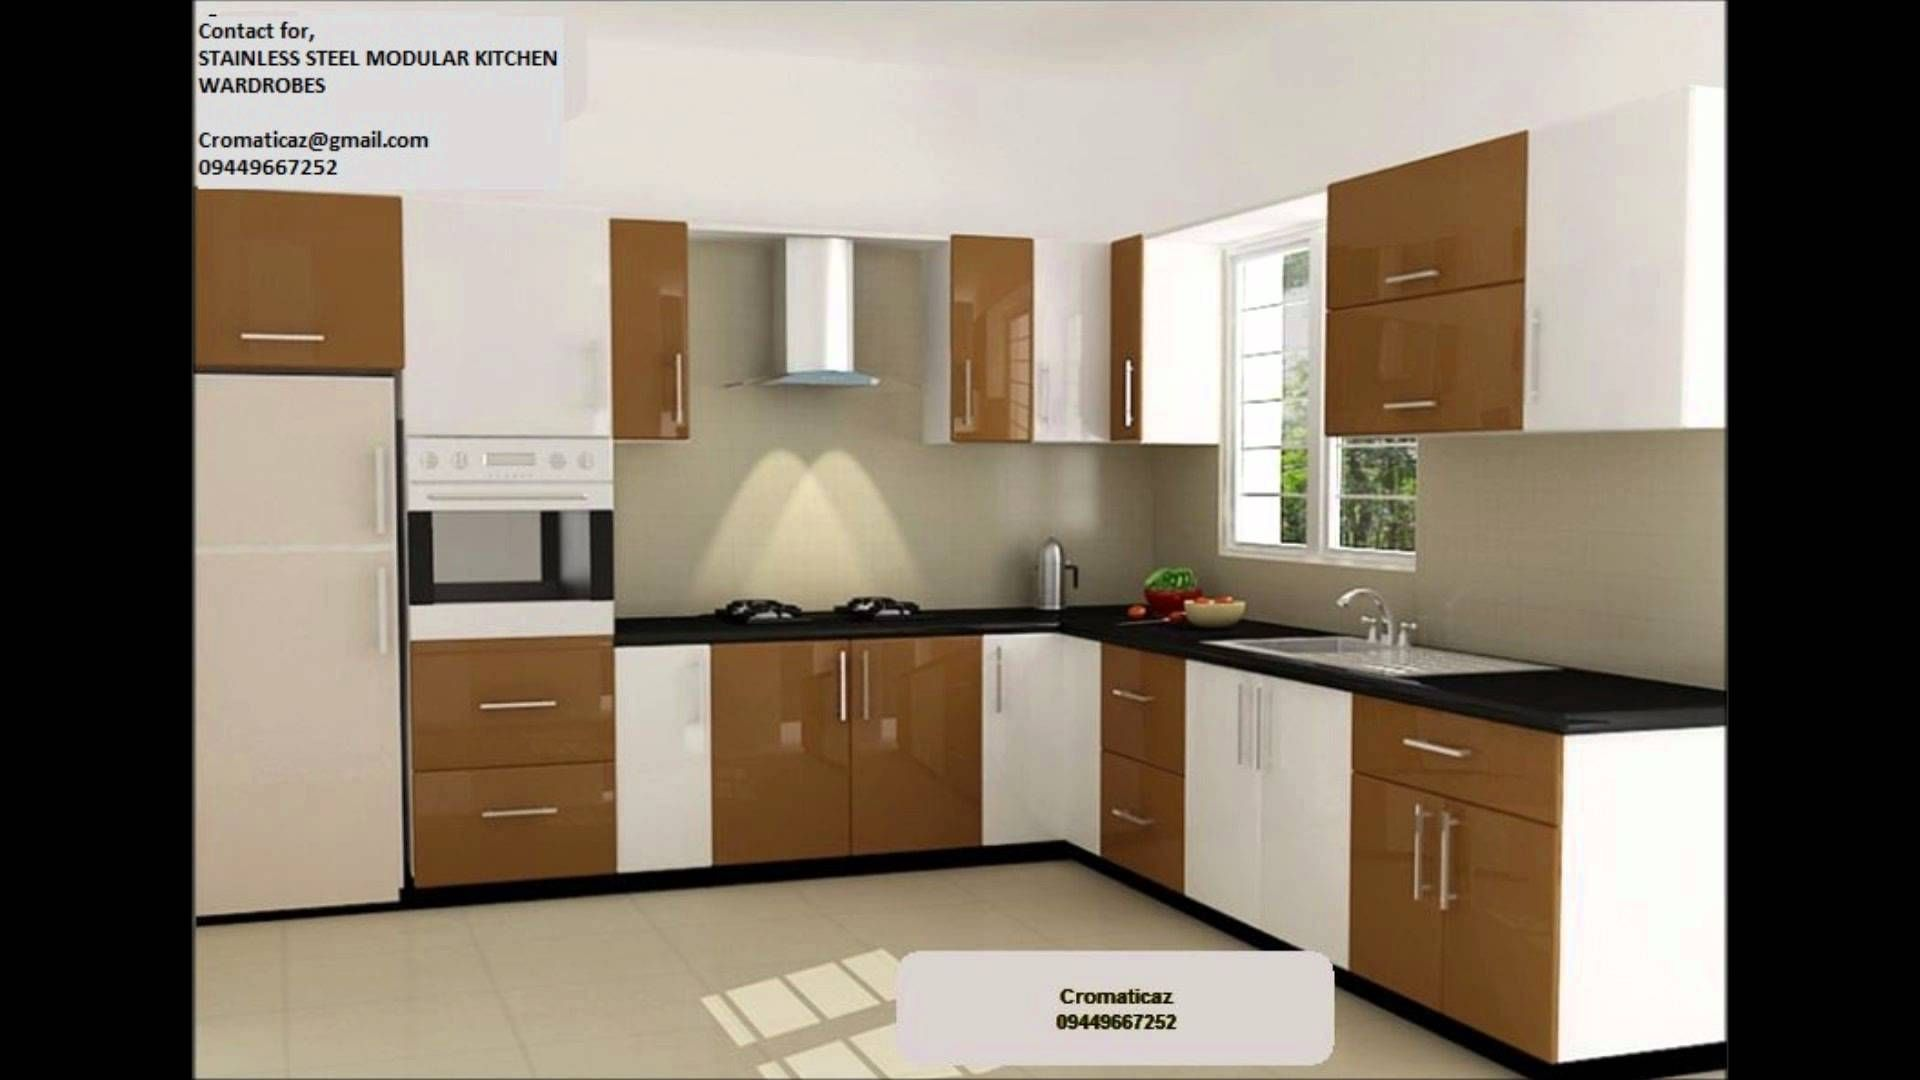 designs of lovely cabinets kitchen conurbania photos small cabinet design modular inspirational ideas org